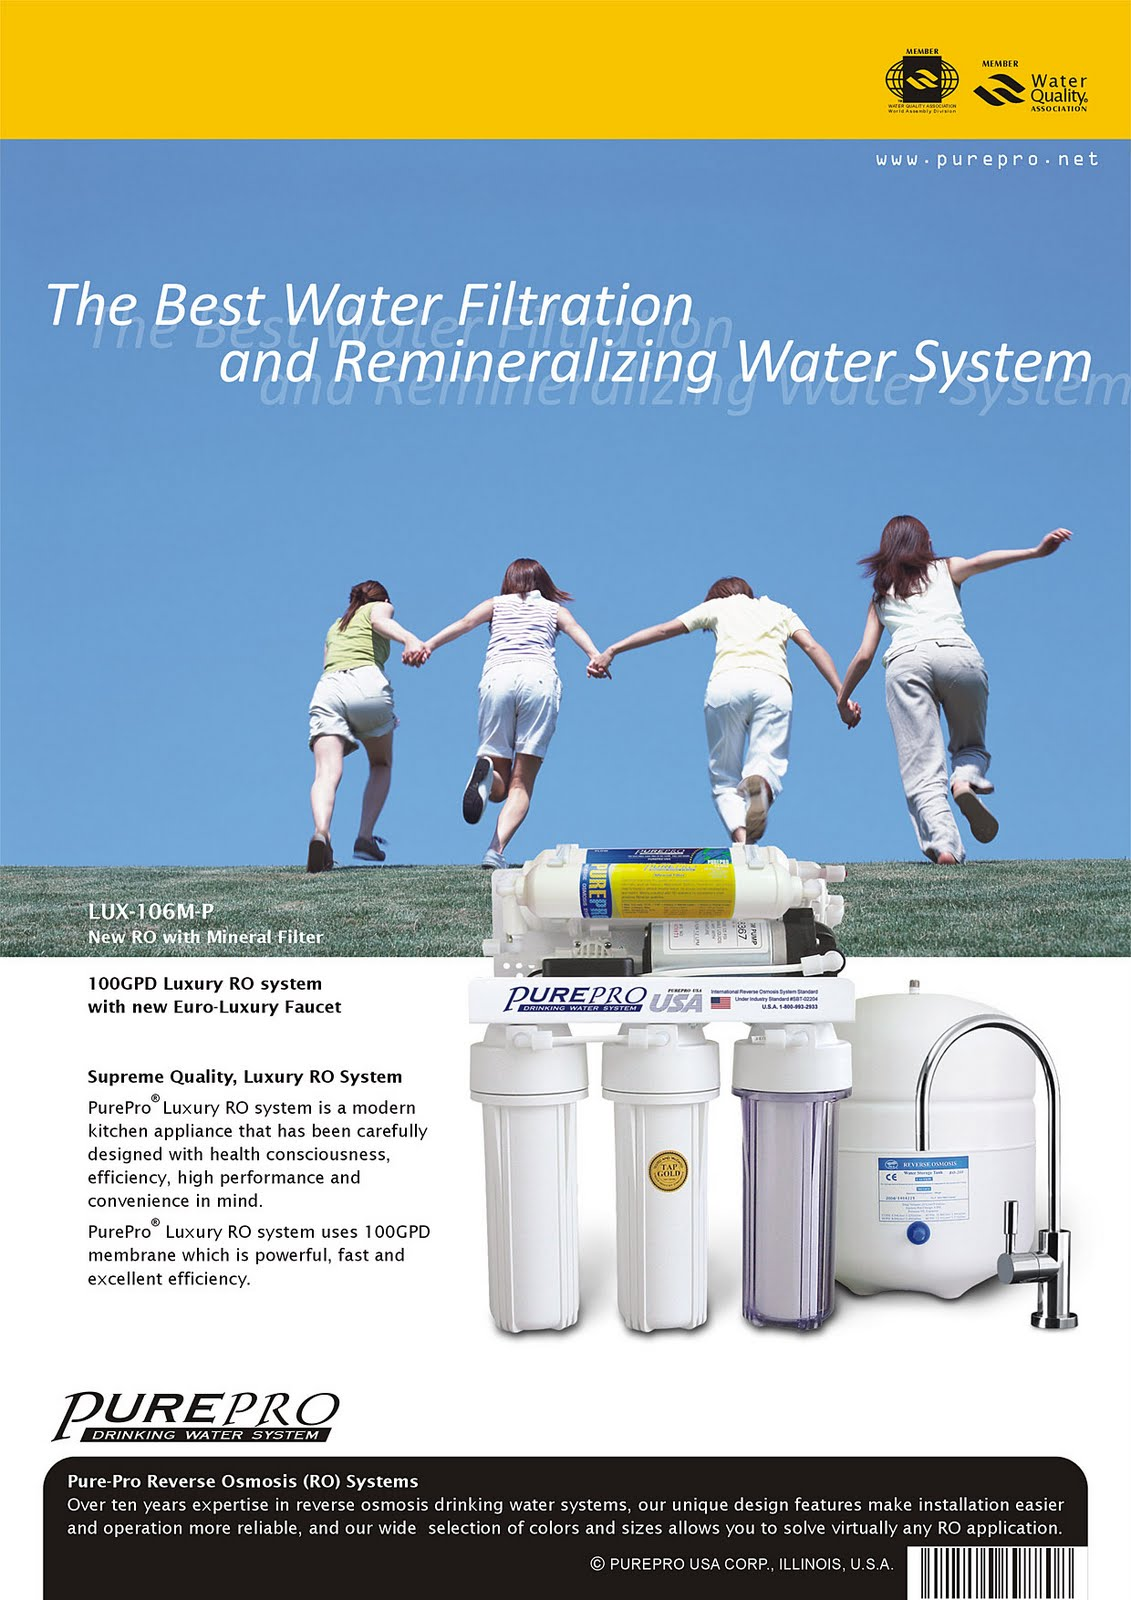 PurePro® LUX-106M-P Reverse Osmosis Water Filtration System